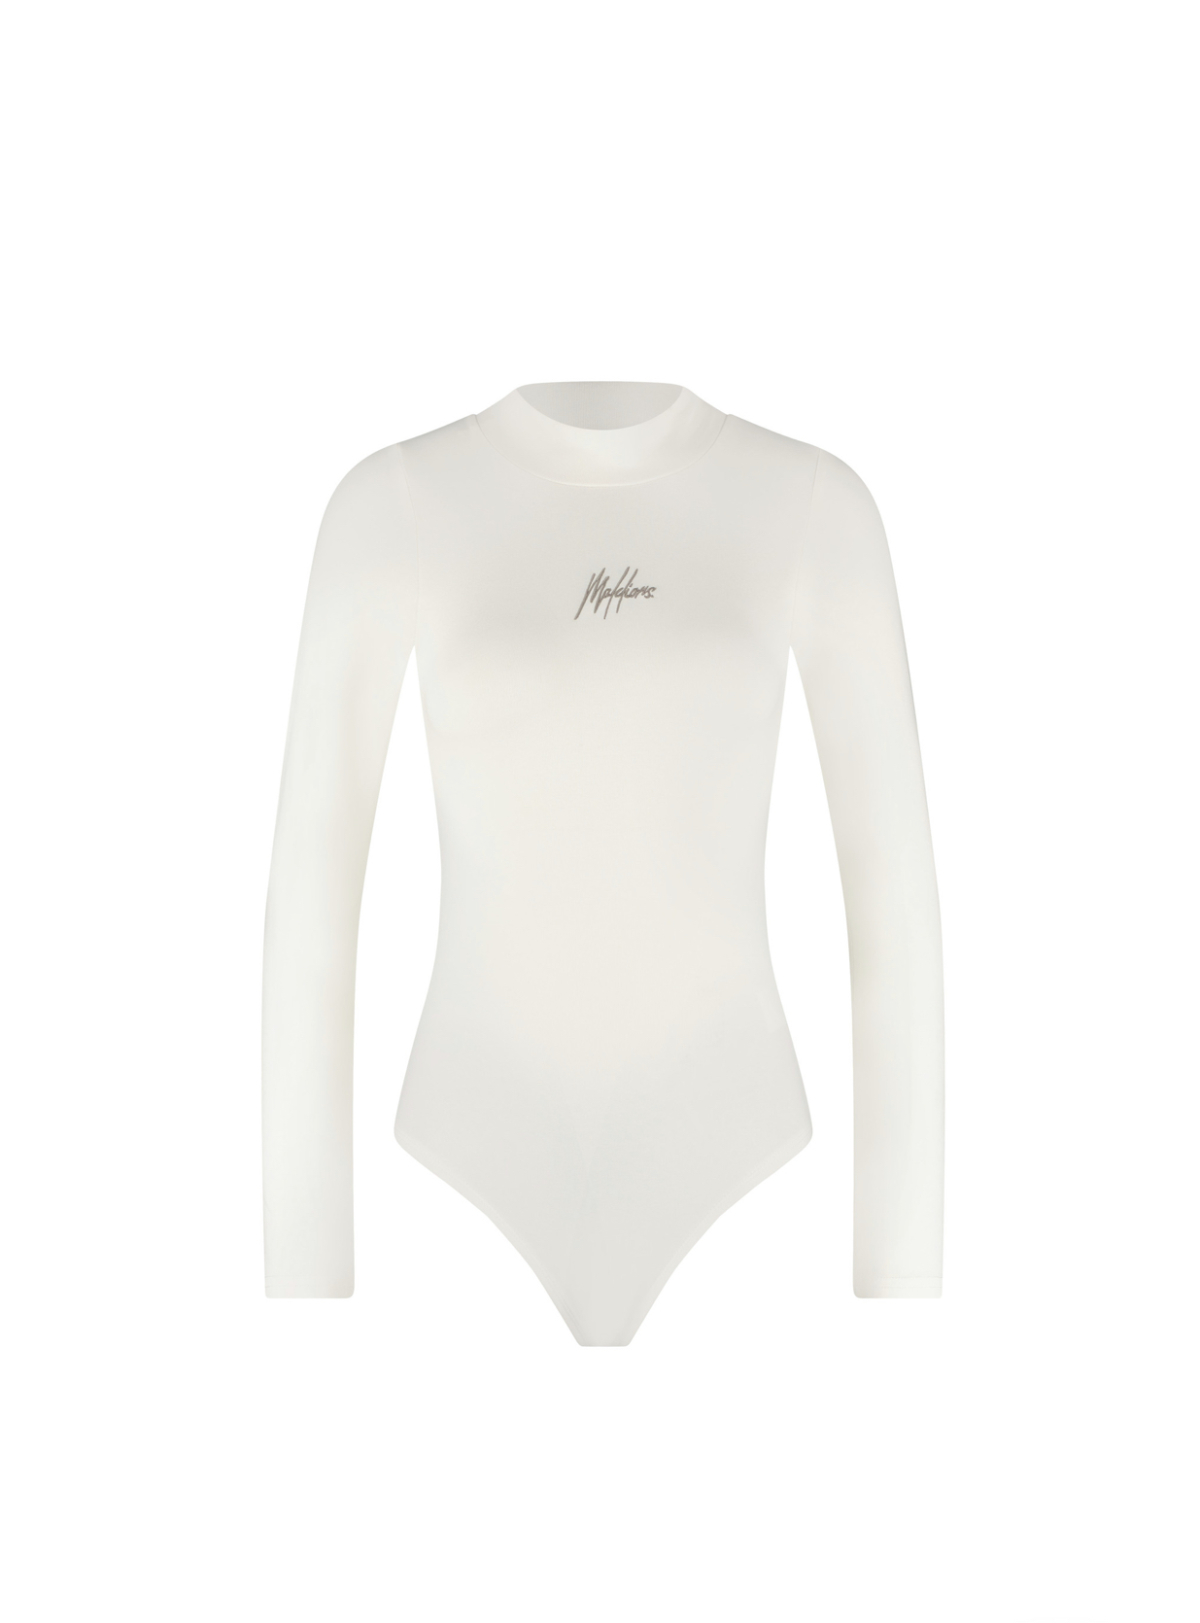 Malelions Women Bodysuit – Off-White/Taupe New